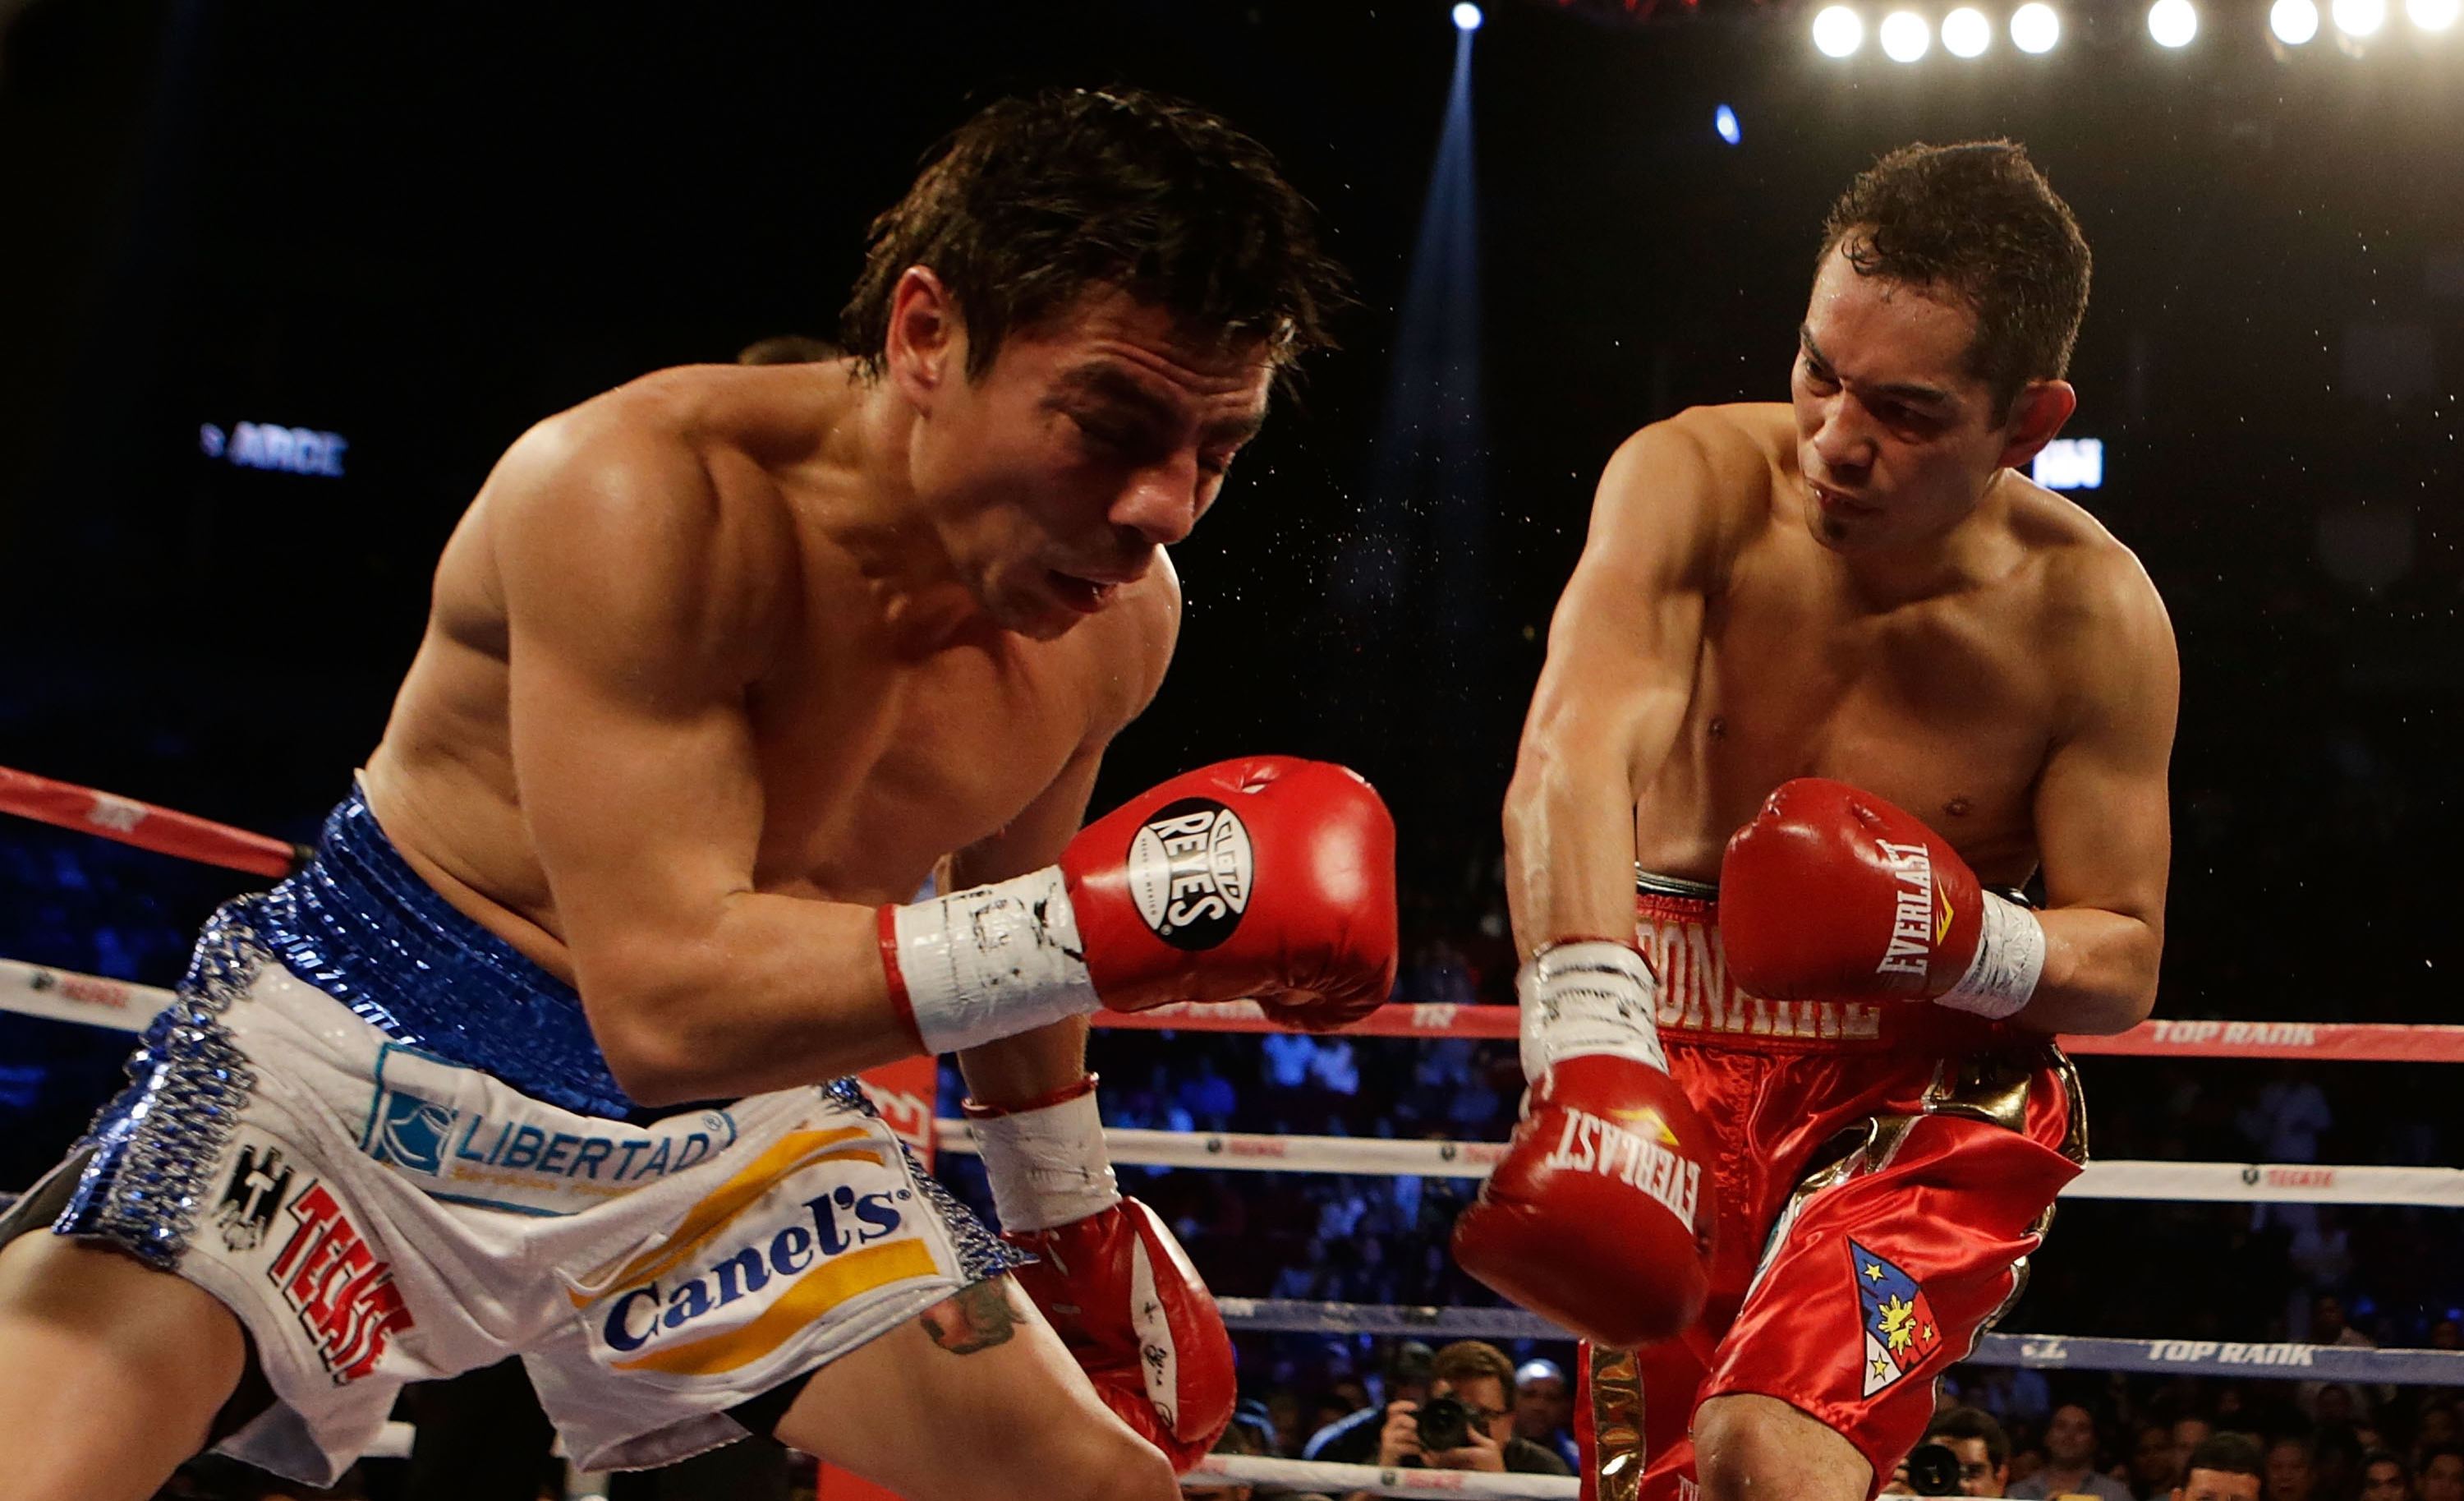 Nonito Donaire Jr. (right), hammering Jorge Arce in his last bout, is no longer consumed by winning. (Getty Images)